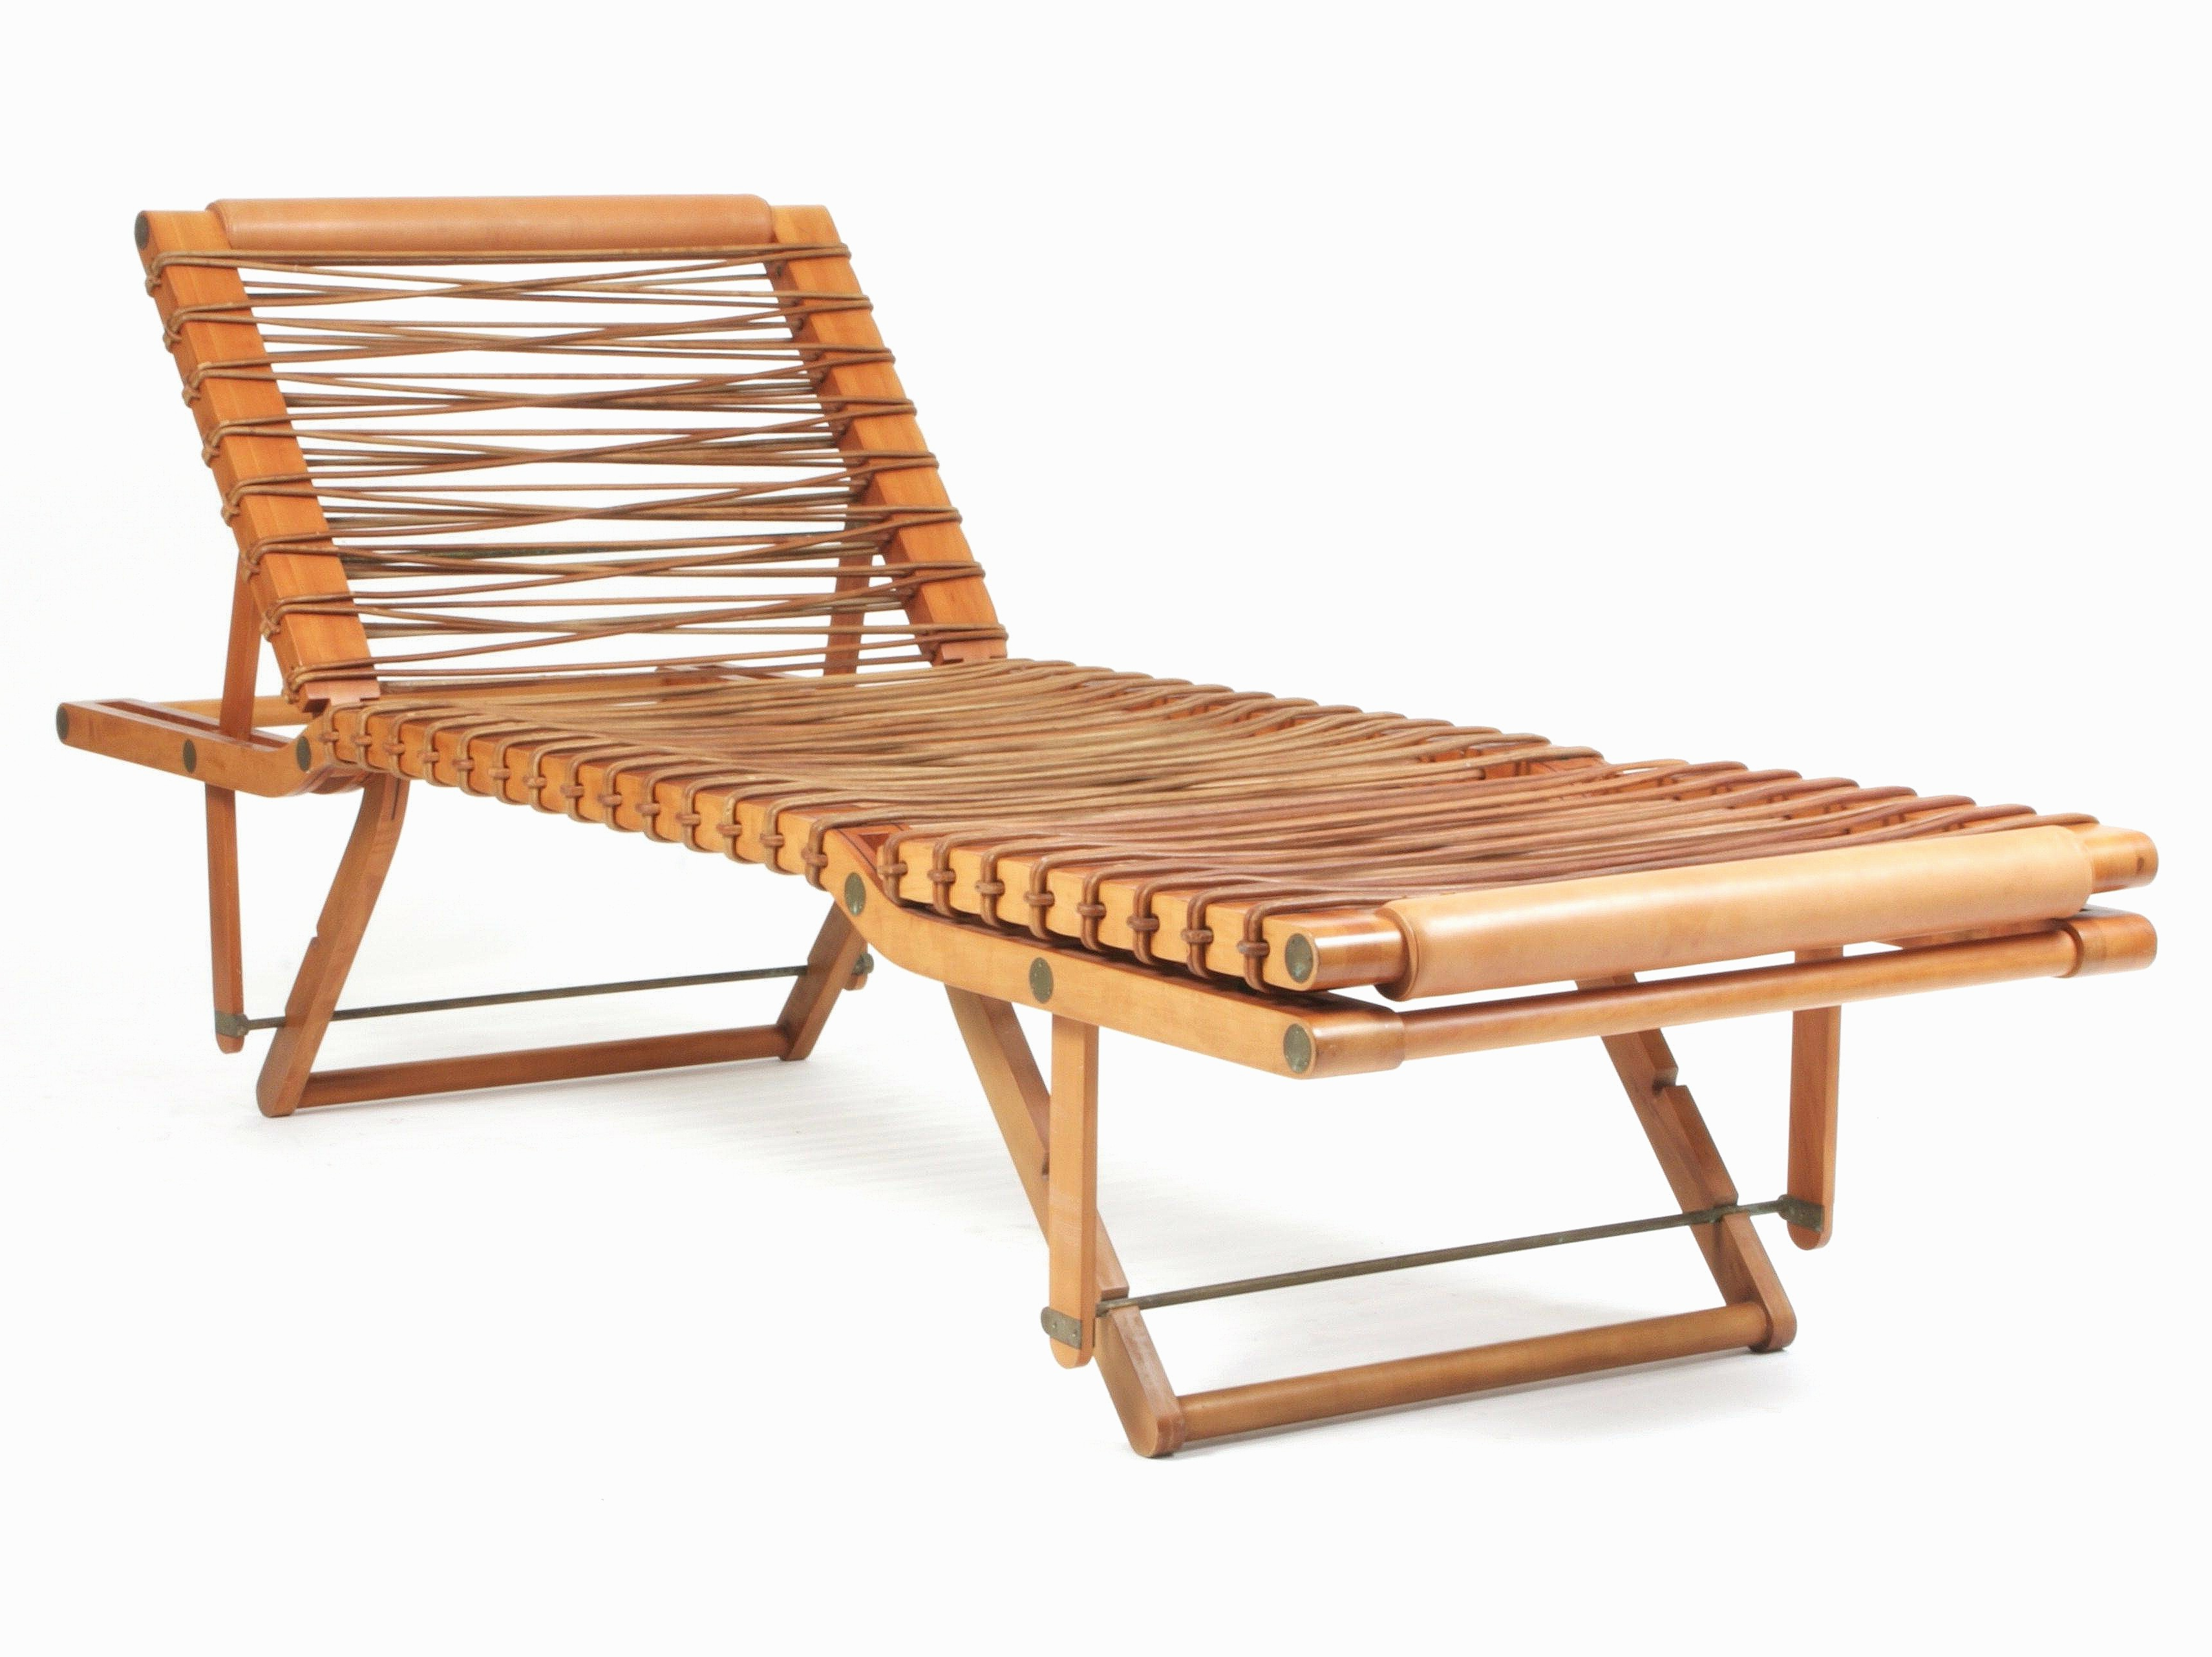 Widely Used Curved Folding Chaise Loungers In 52 Wood Chaise Lounge, Ana White $35 Wood Chaise Lounges Diy (View 23 of 25)